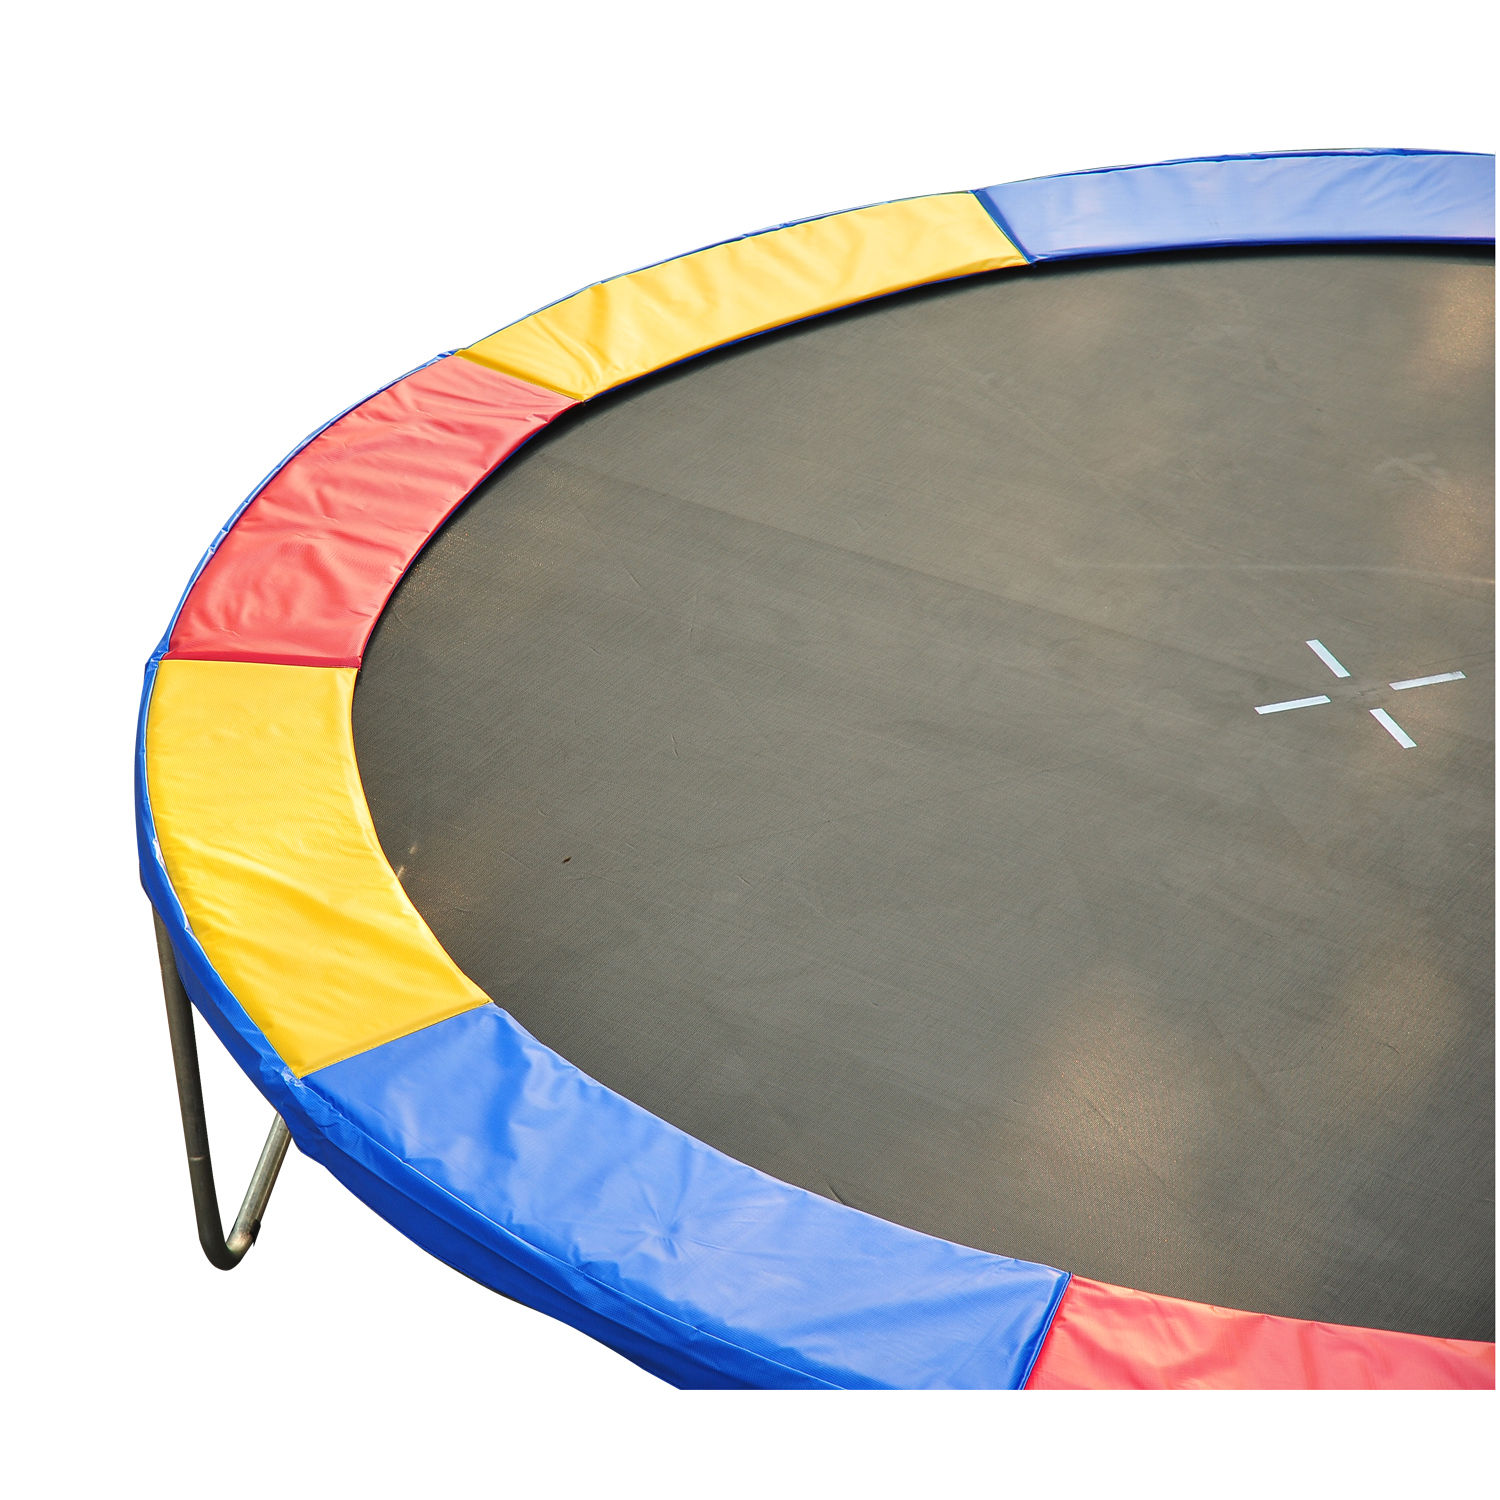 8ft-Trampoline-Pad-Spring-Safety-Replacement-Gym-Bounce-Jump-Cover-EPE-Foam thumbnail 9